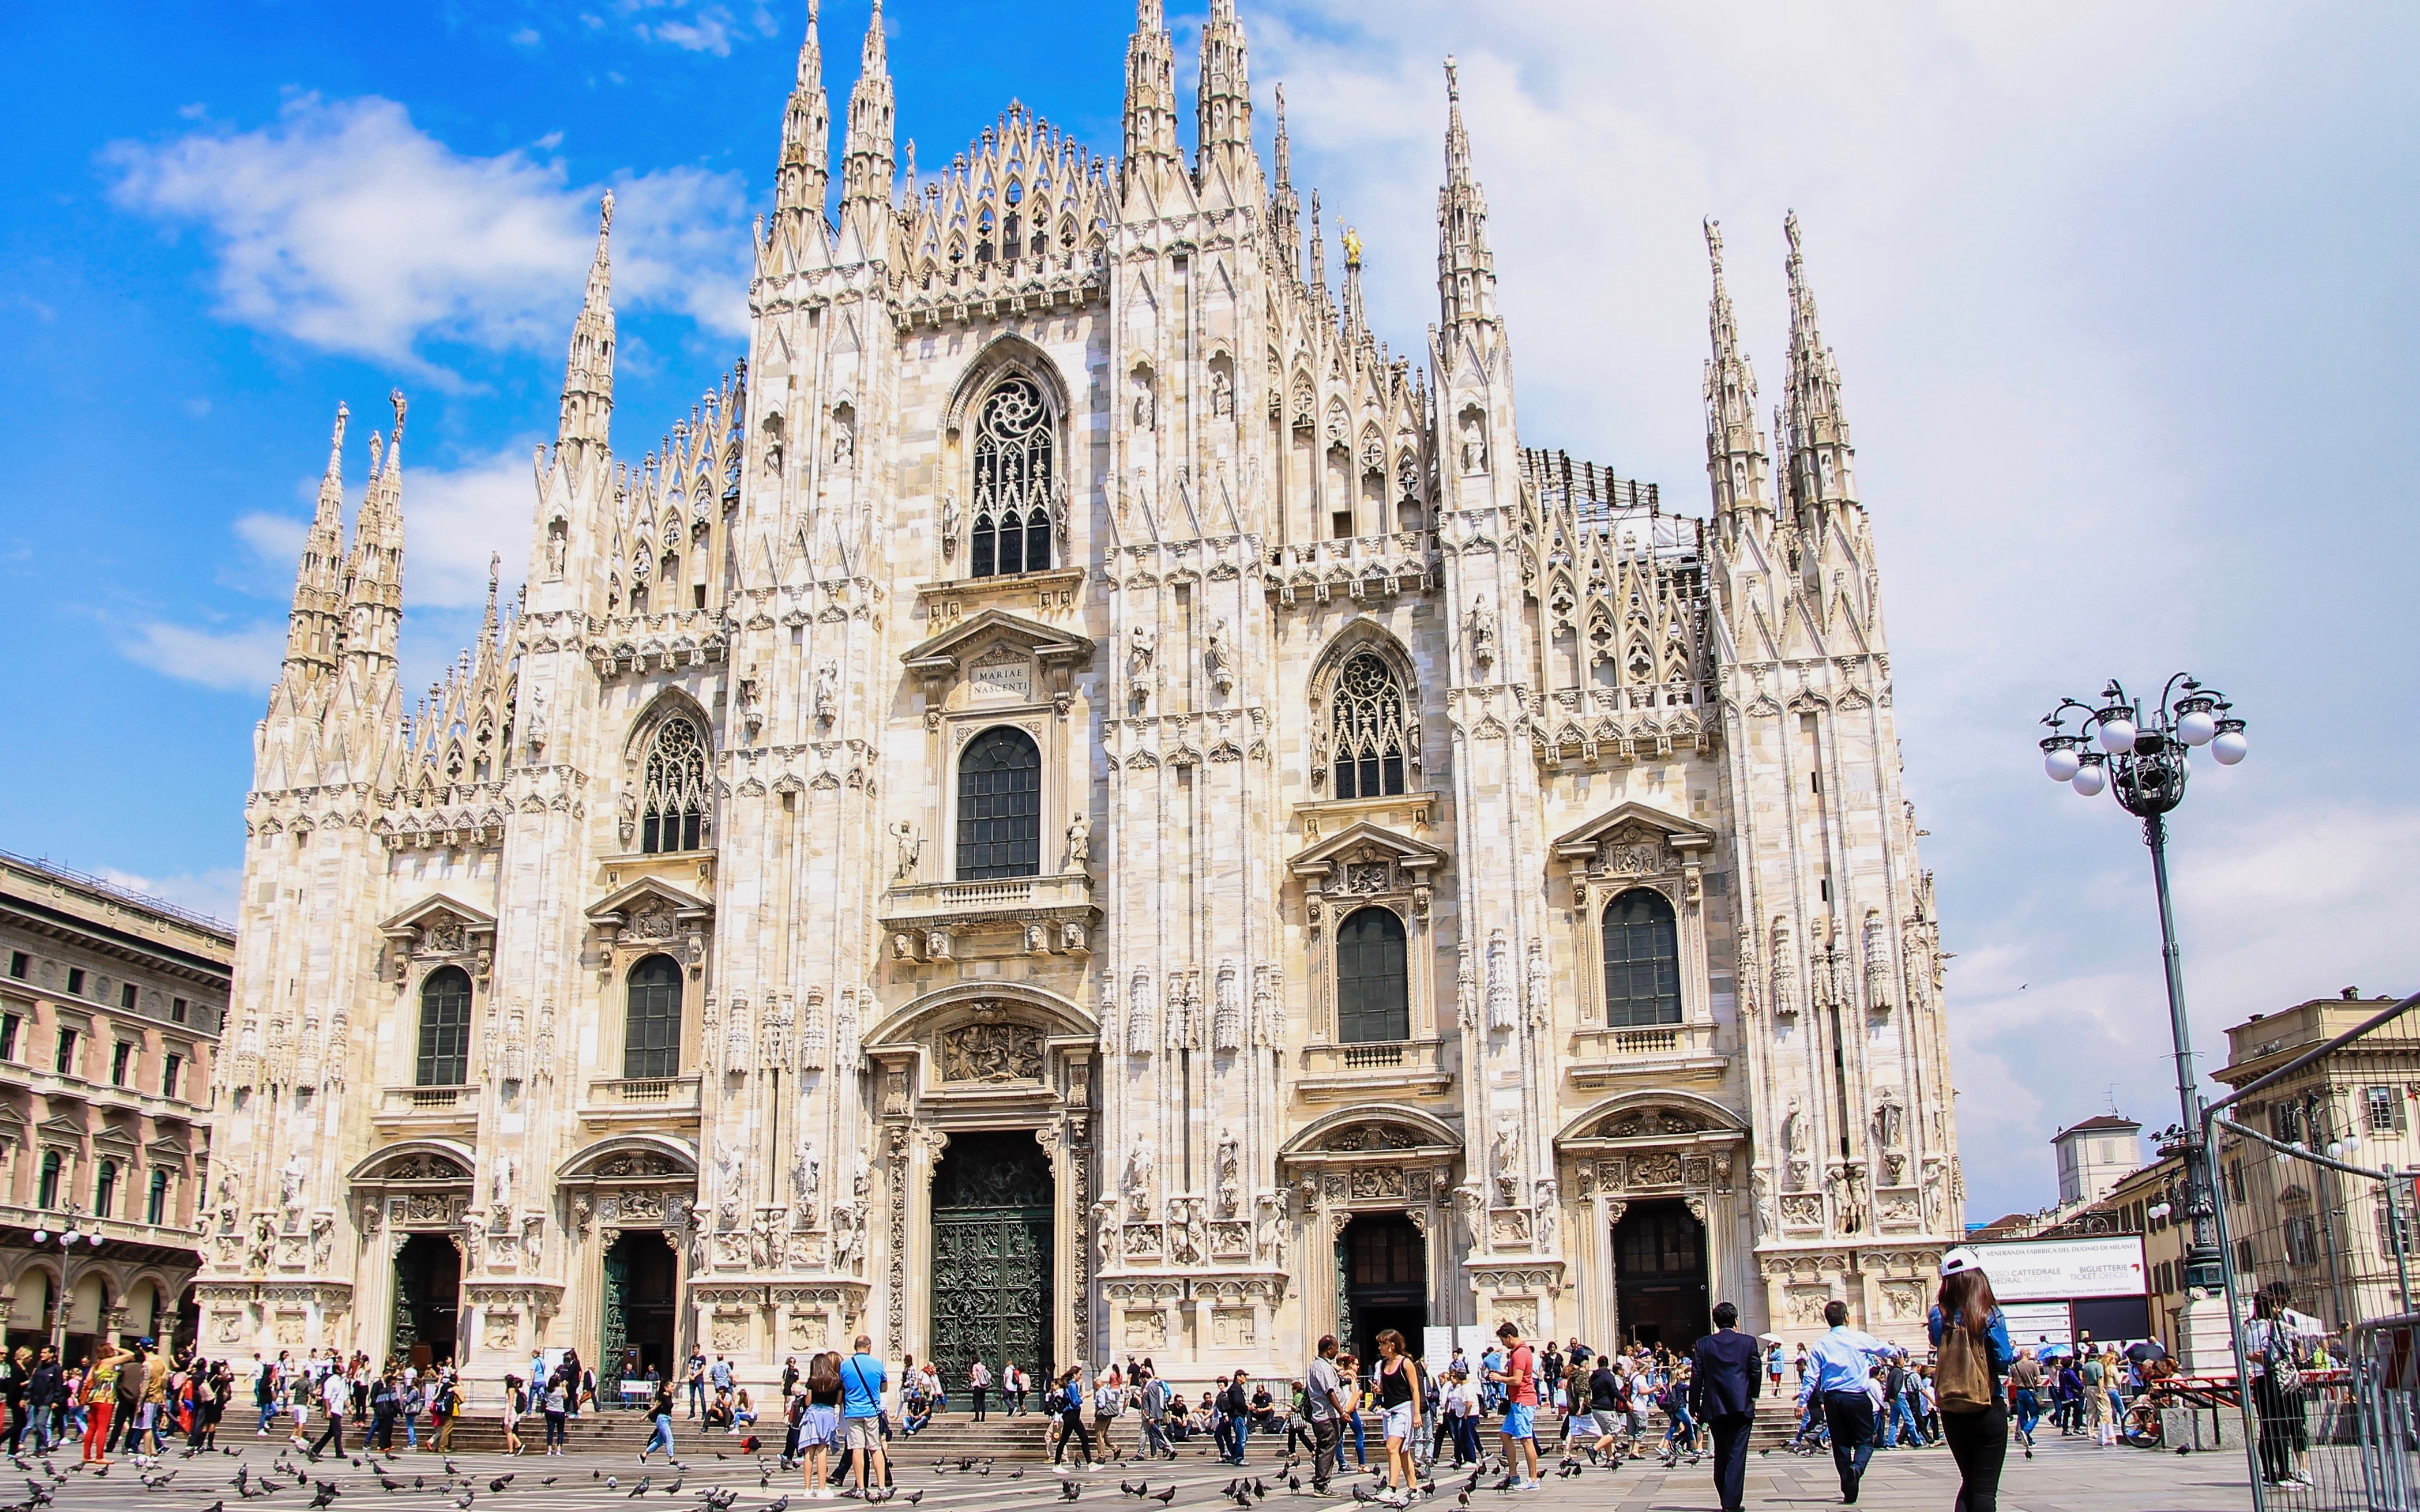 Bf24fcef 4508 4379 9499 77ad255a76c9 8903 milan duomo cathedral rooltop and its terraces elevator access 01